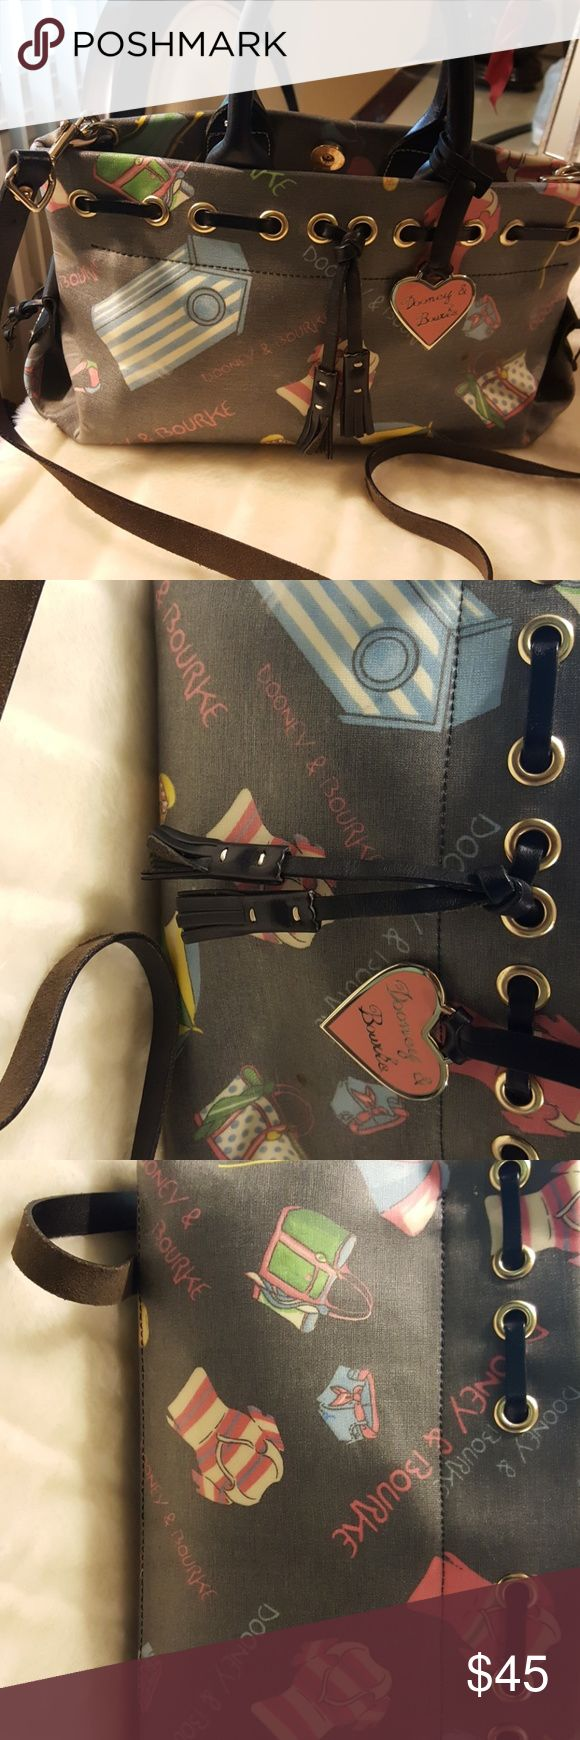 DOONEY AND BURKE CROSS BODY HANDBAG This has has only been used once so in EXCELLENT CONDITION  it a medium sized bag Dooney & Bourke Bags Crossbody Bags